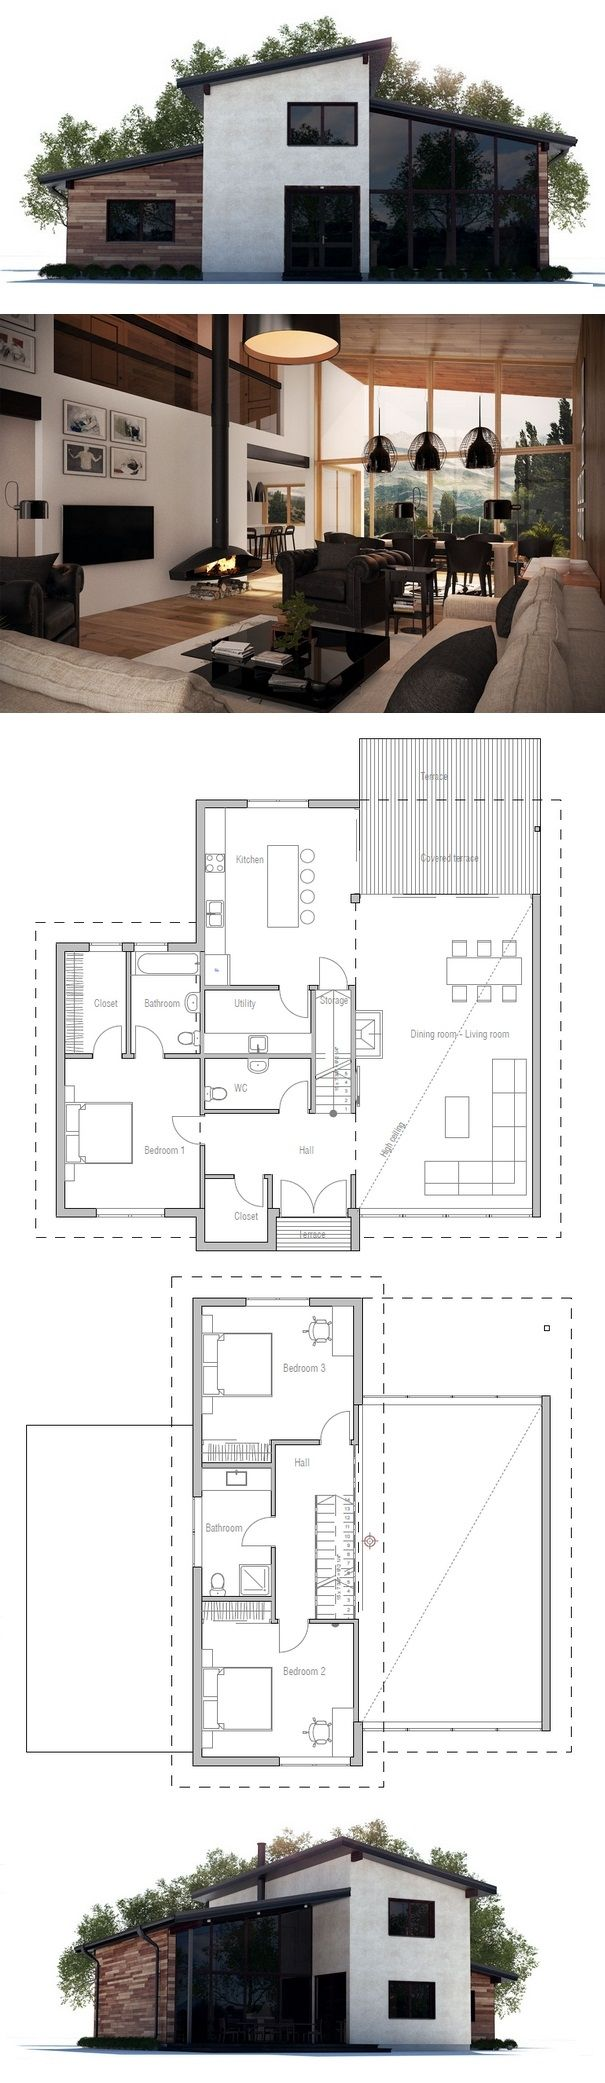 House Plan from ConceptHome.com